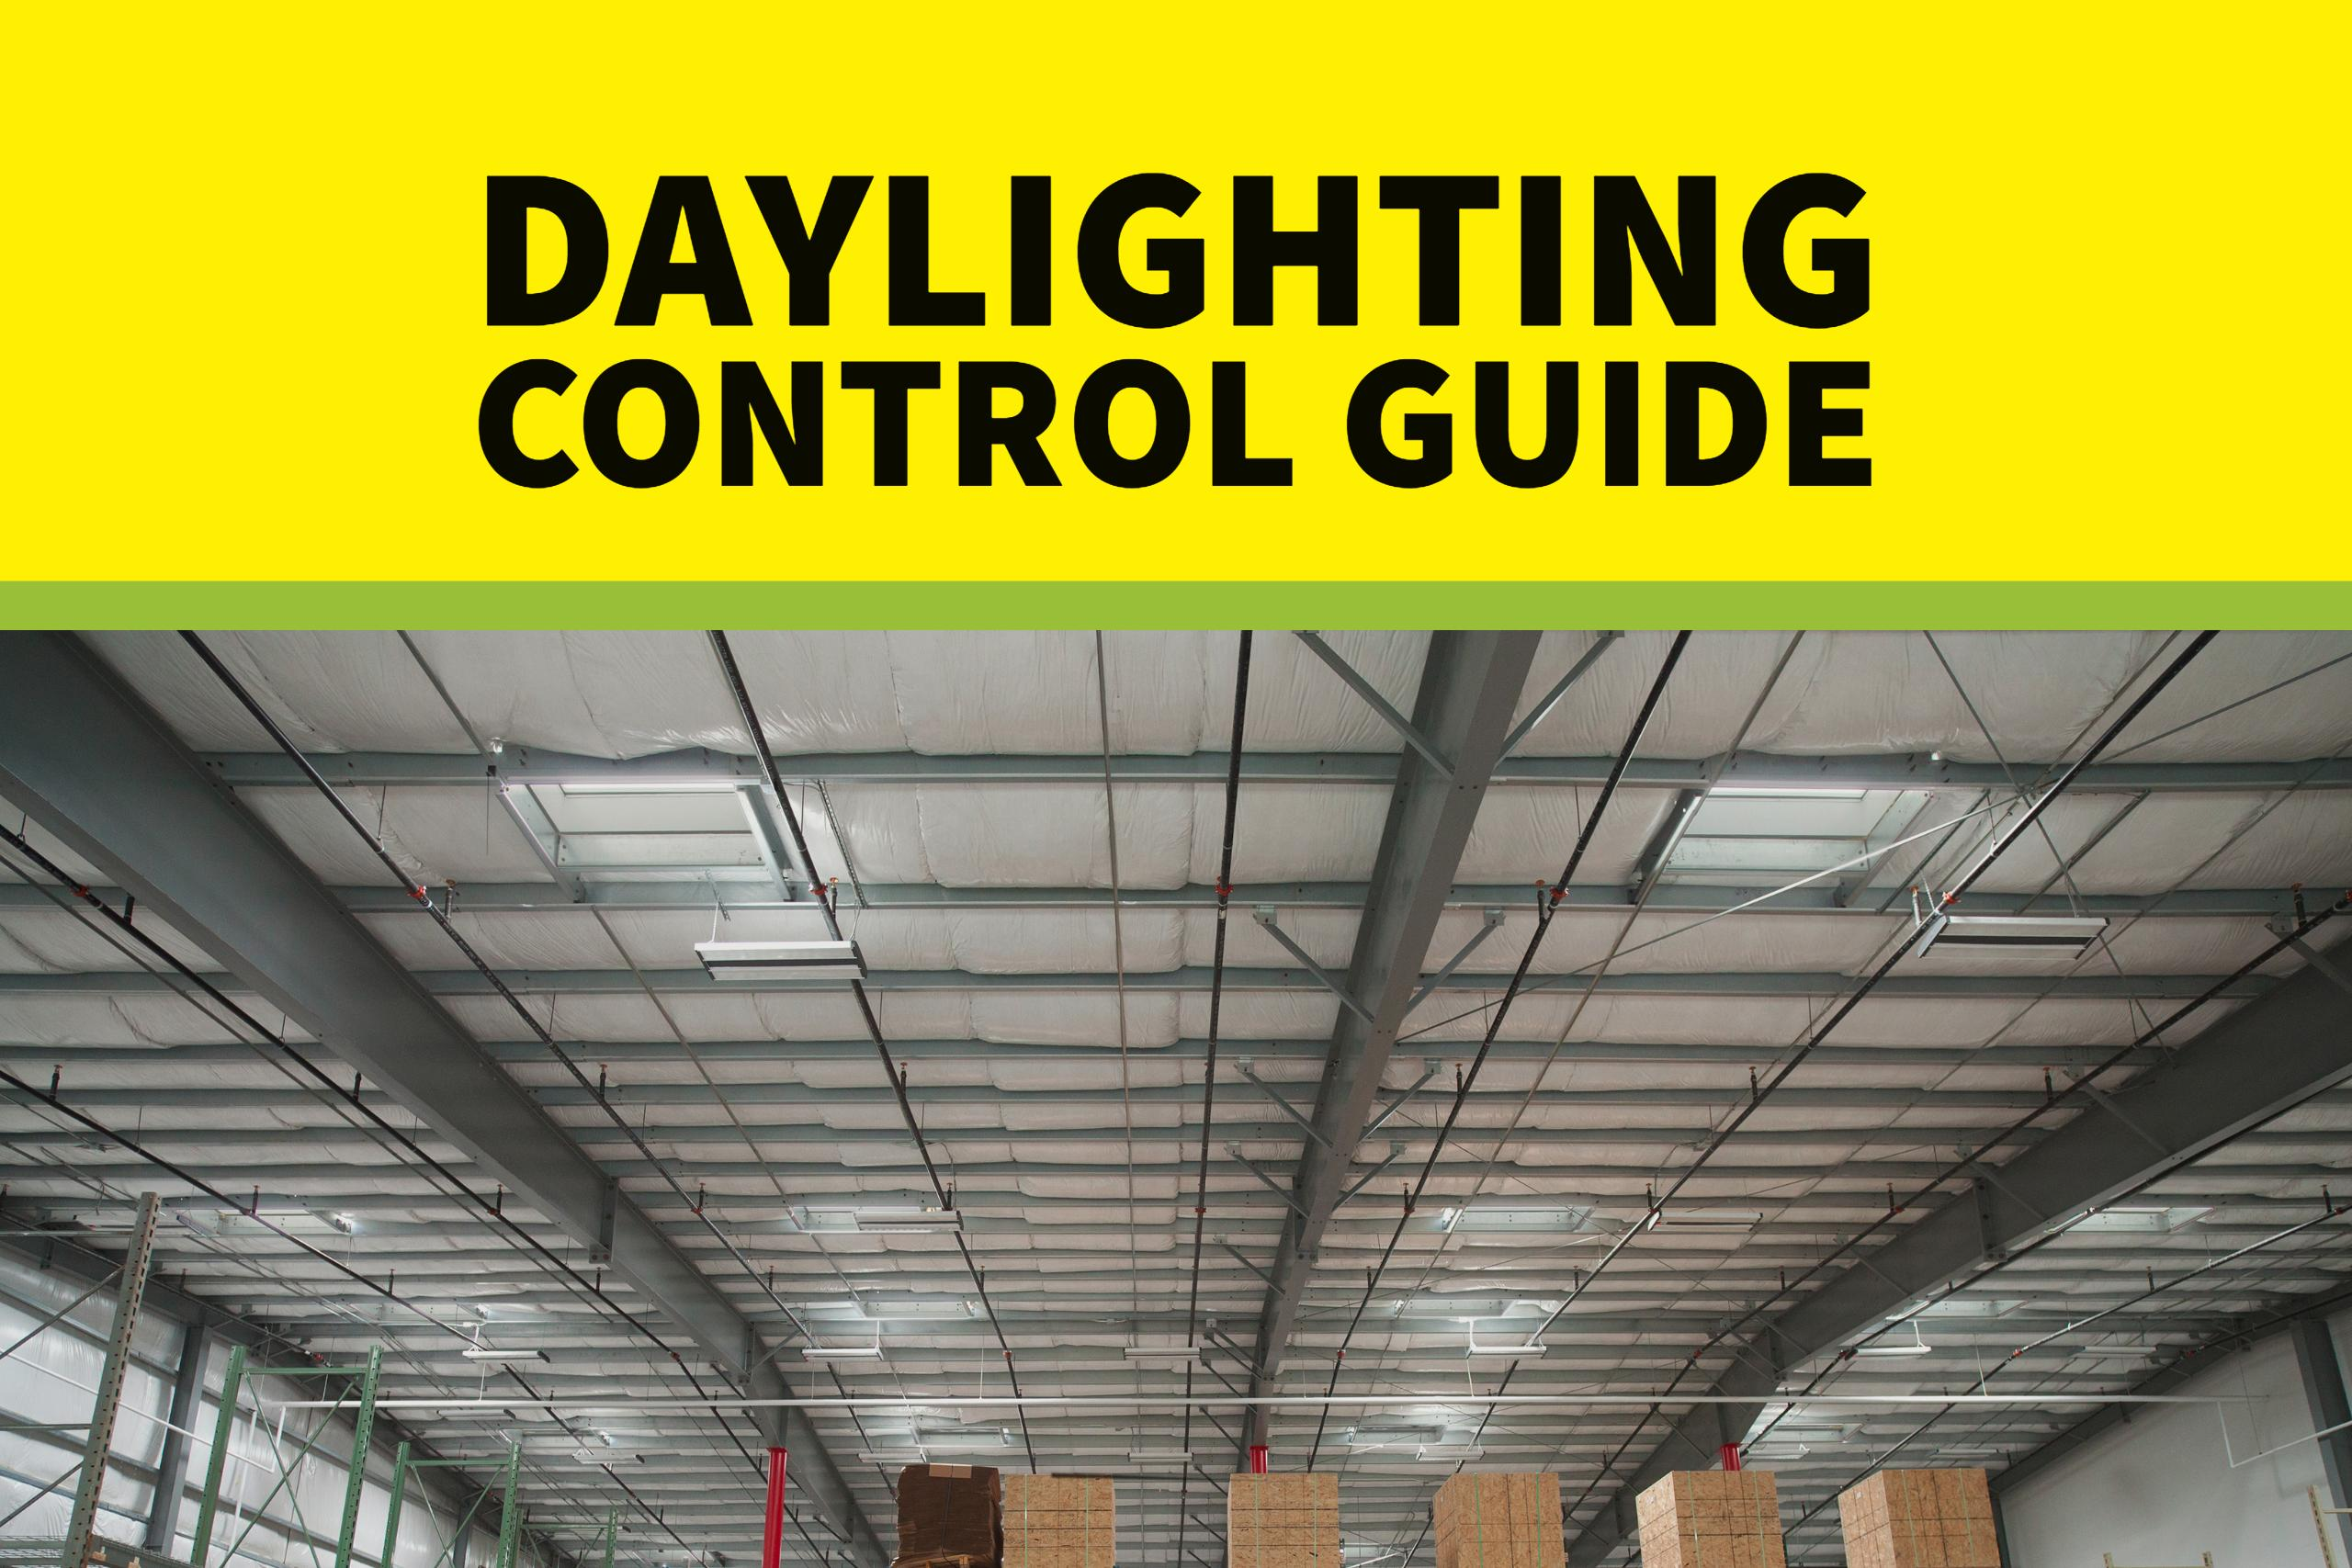 Daylighting Control Guide Application Guide